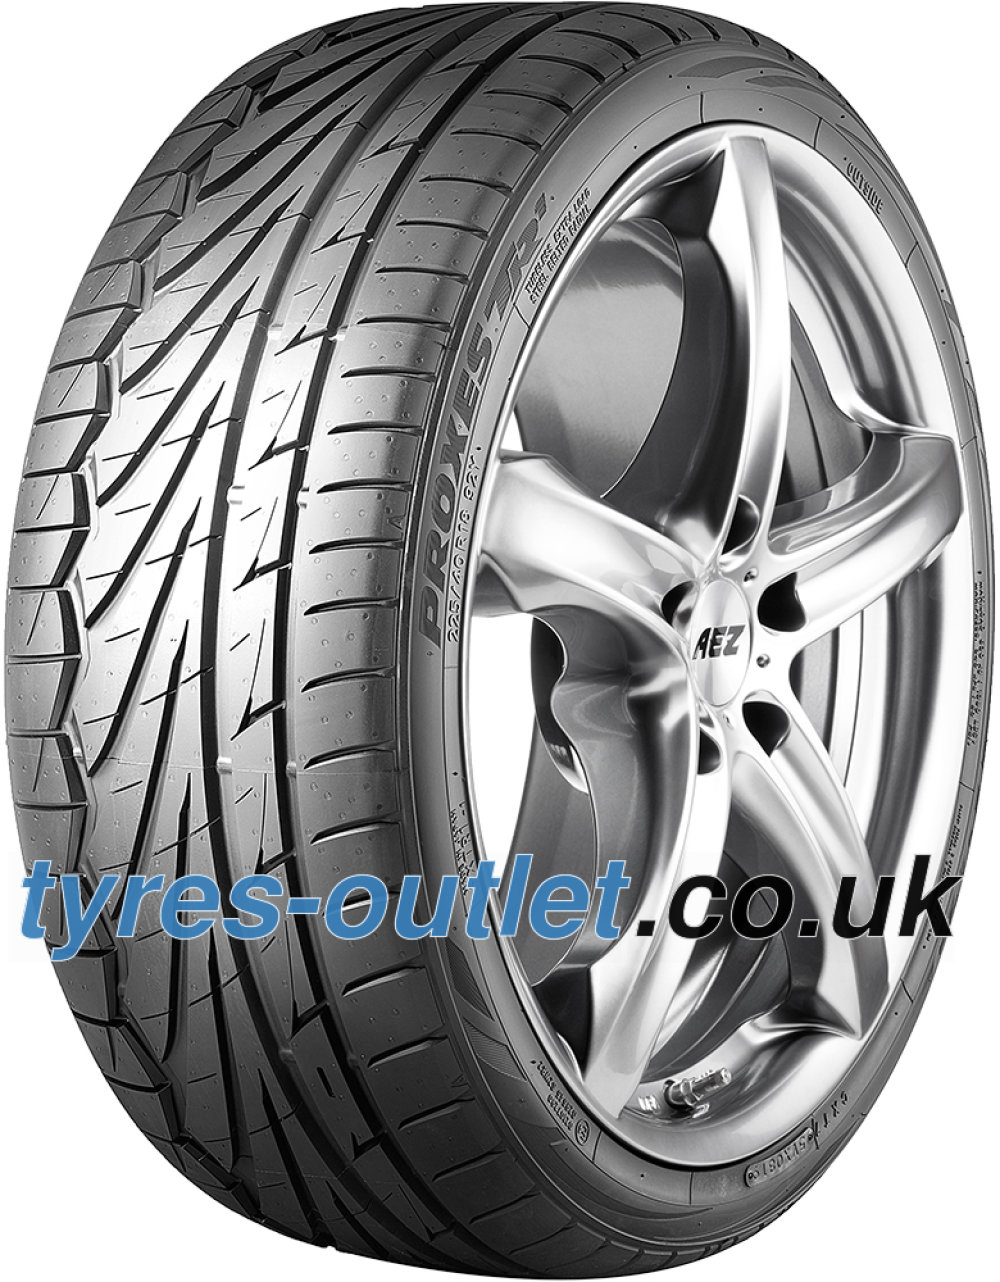 Toyo Proxes TR9. Only 9.9 £